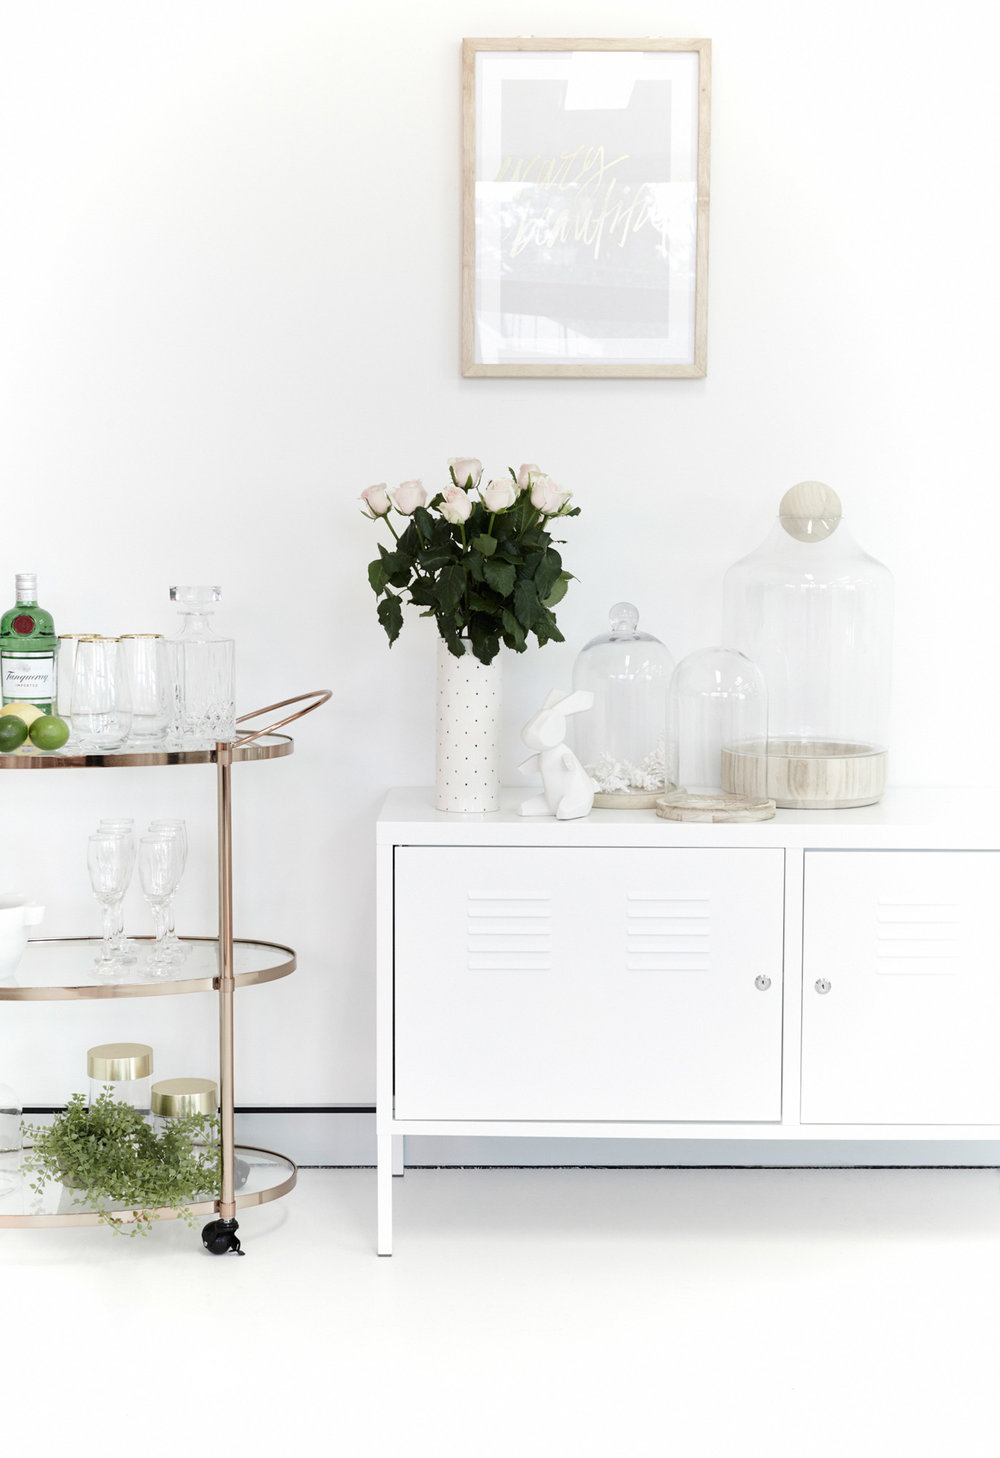 BARCART - FREEDOM ACCESSORIES -  HAMPTONS AT HOME  +  FREEDOM  CABINET - IKEA